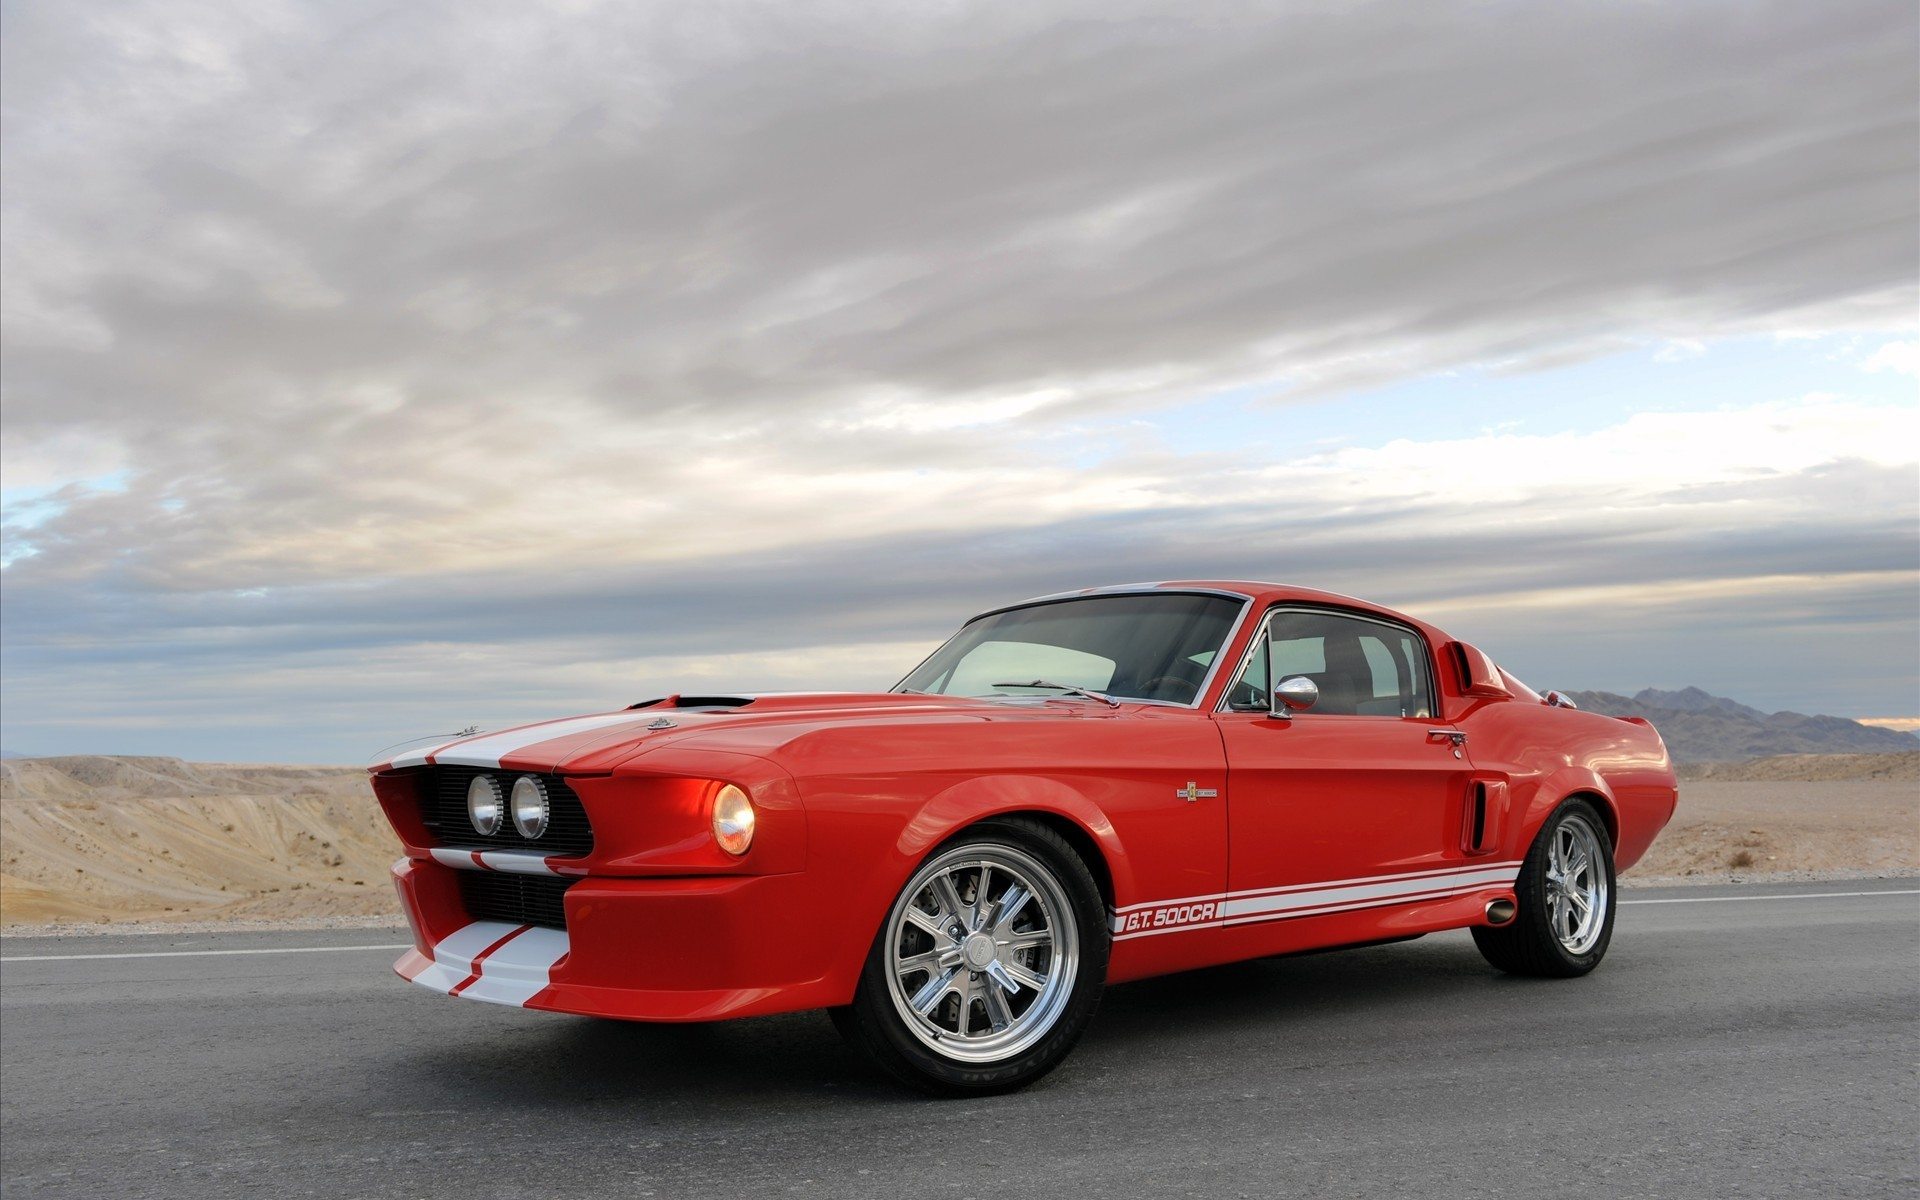 Nice Cars Wallpapers Cars030 Wallpaper View